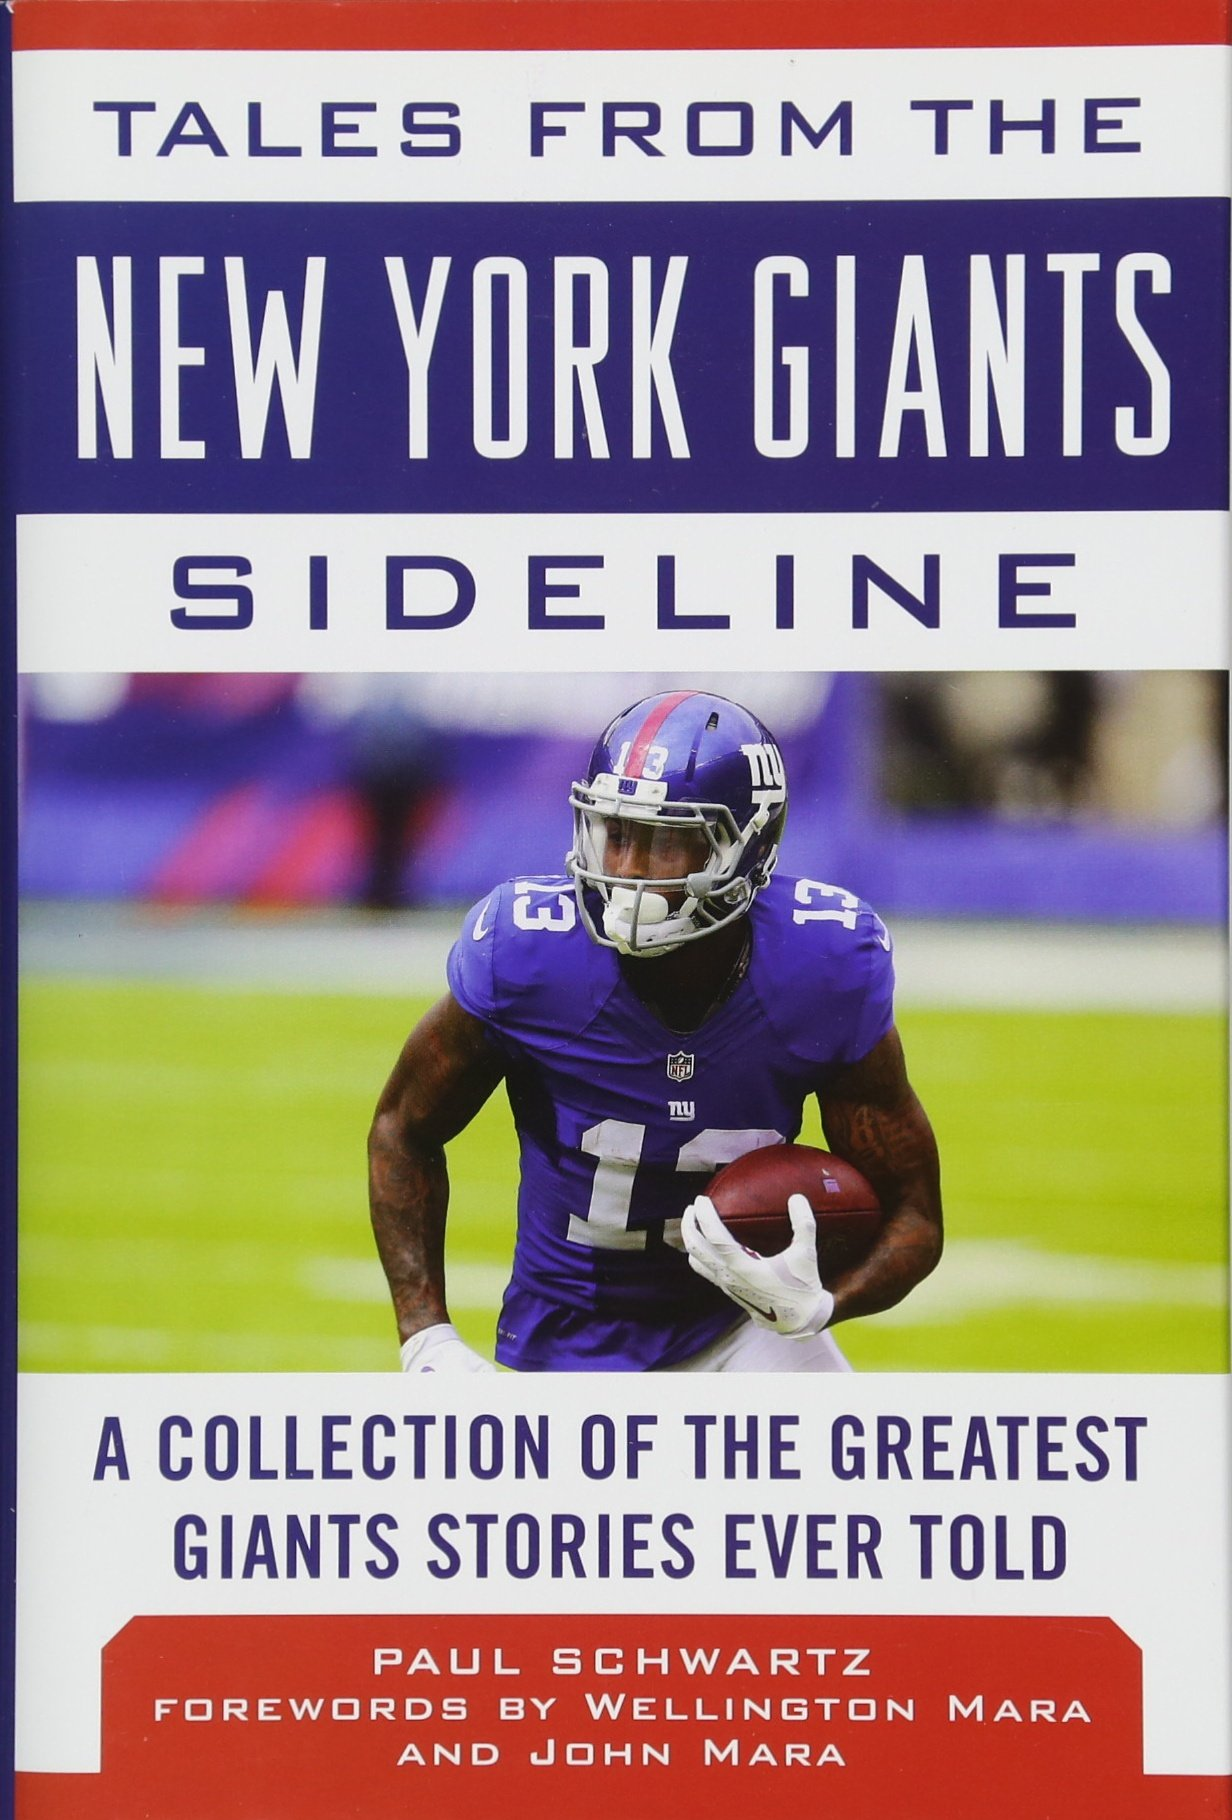 Download Tales from the New York Giants Sideline: A Collection of the Greatest Giants Stories Ever Told (Tales from the Team) ebook